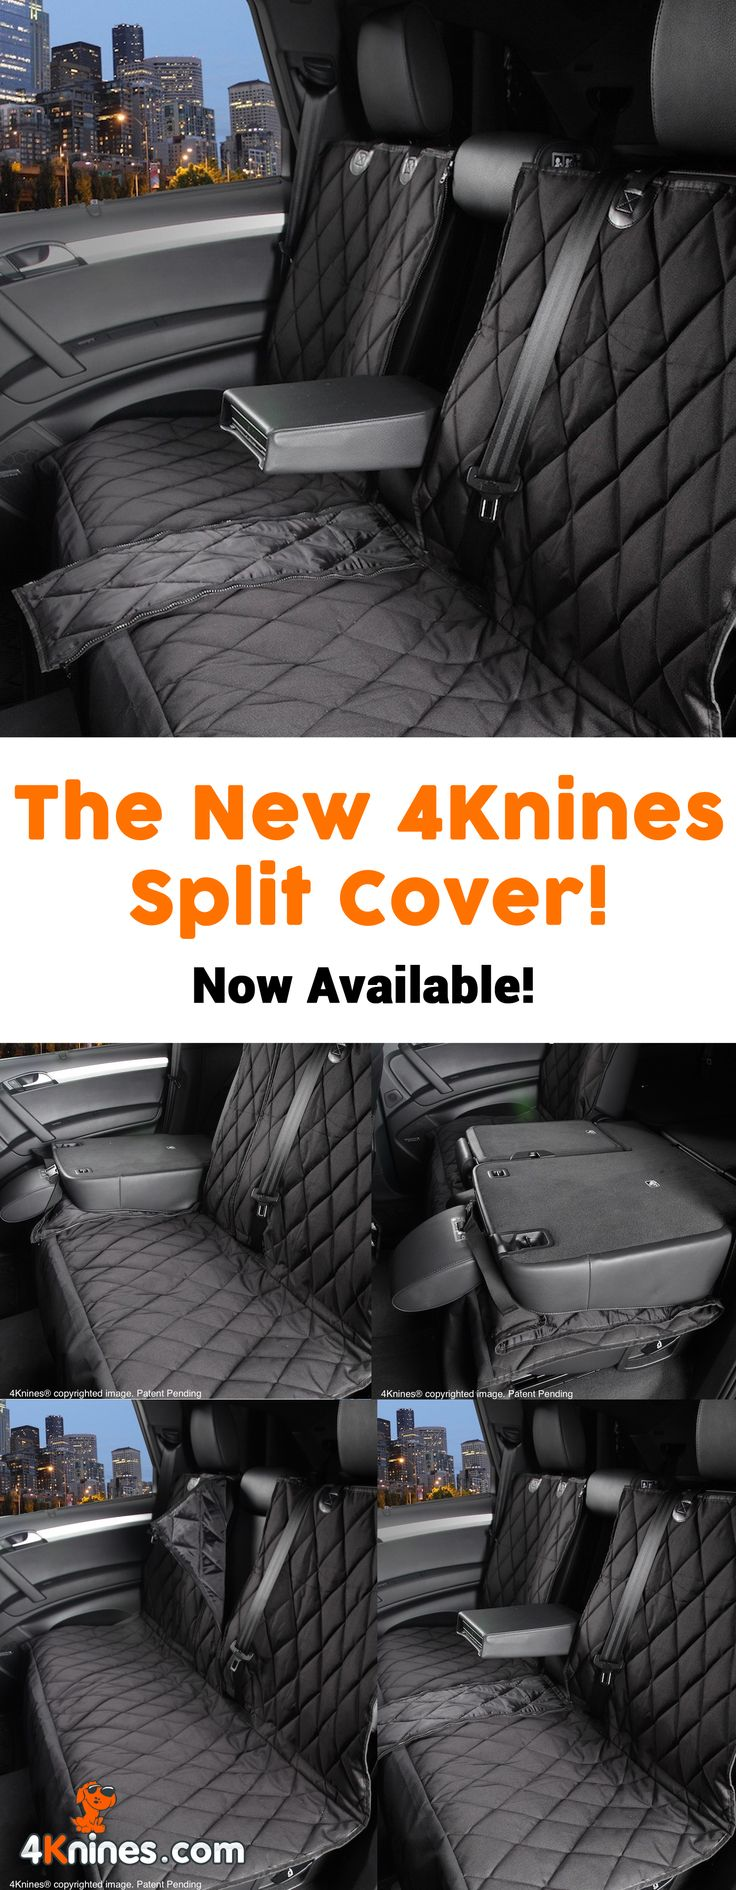 4knines split seat covers for dogs and pets allows for use of a 60 40